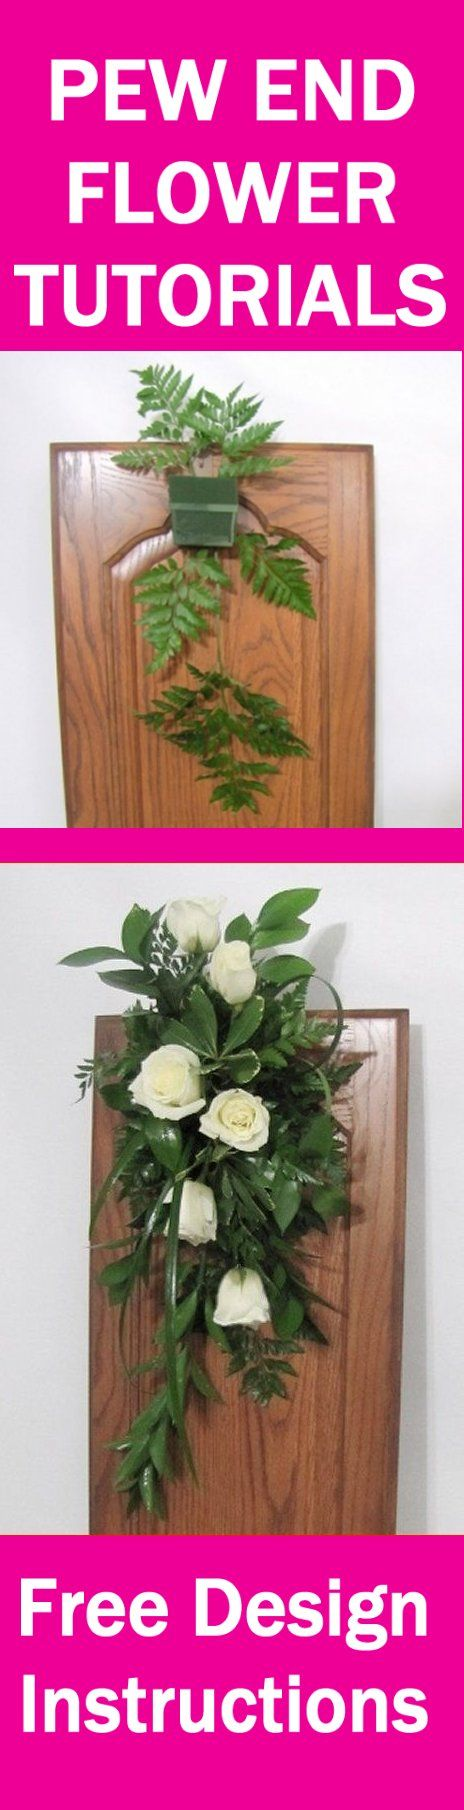 Wedding Pew Decorations - Easy DIY Flower Tutorials  Learn how to make bridal bouquets, wedding corsages, groom boutonnieres, church pew ends, candelabras and other decorations and reception table centerpieces.  Buy wholesale flowers and discount florist supplies.